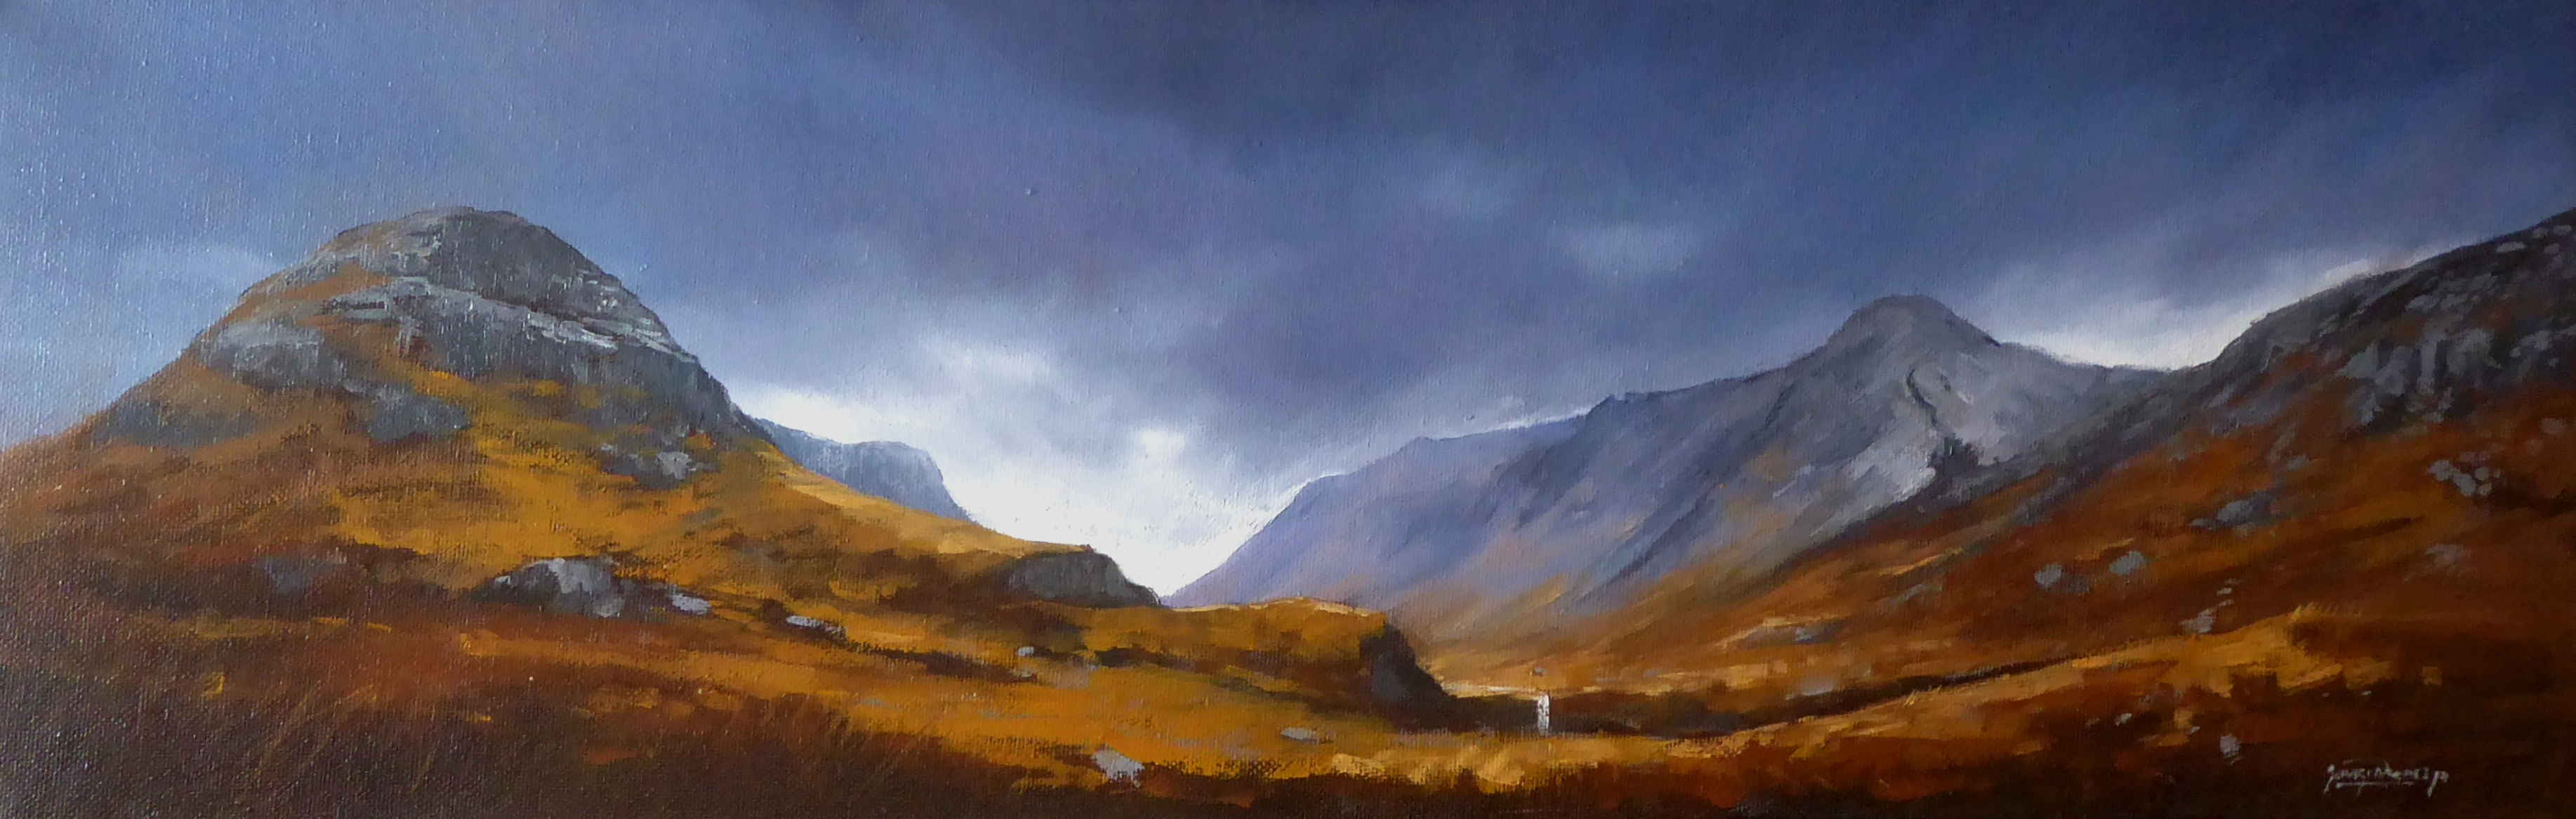 George Noakes_Autumn Glen Coe